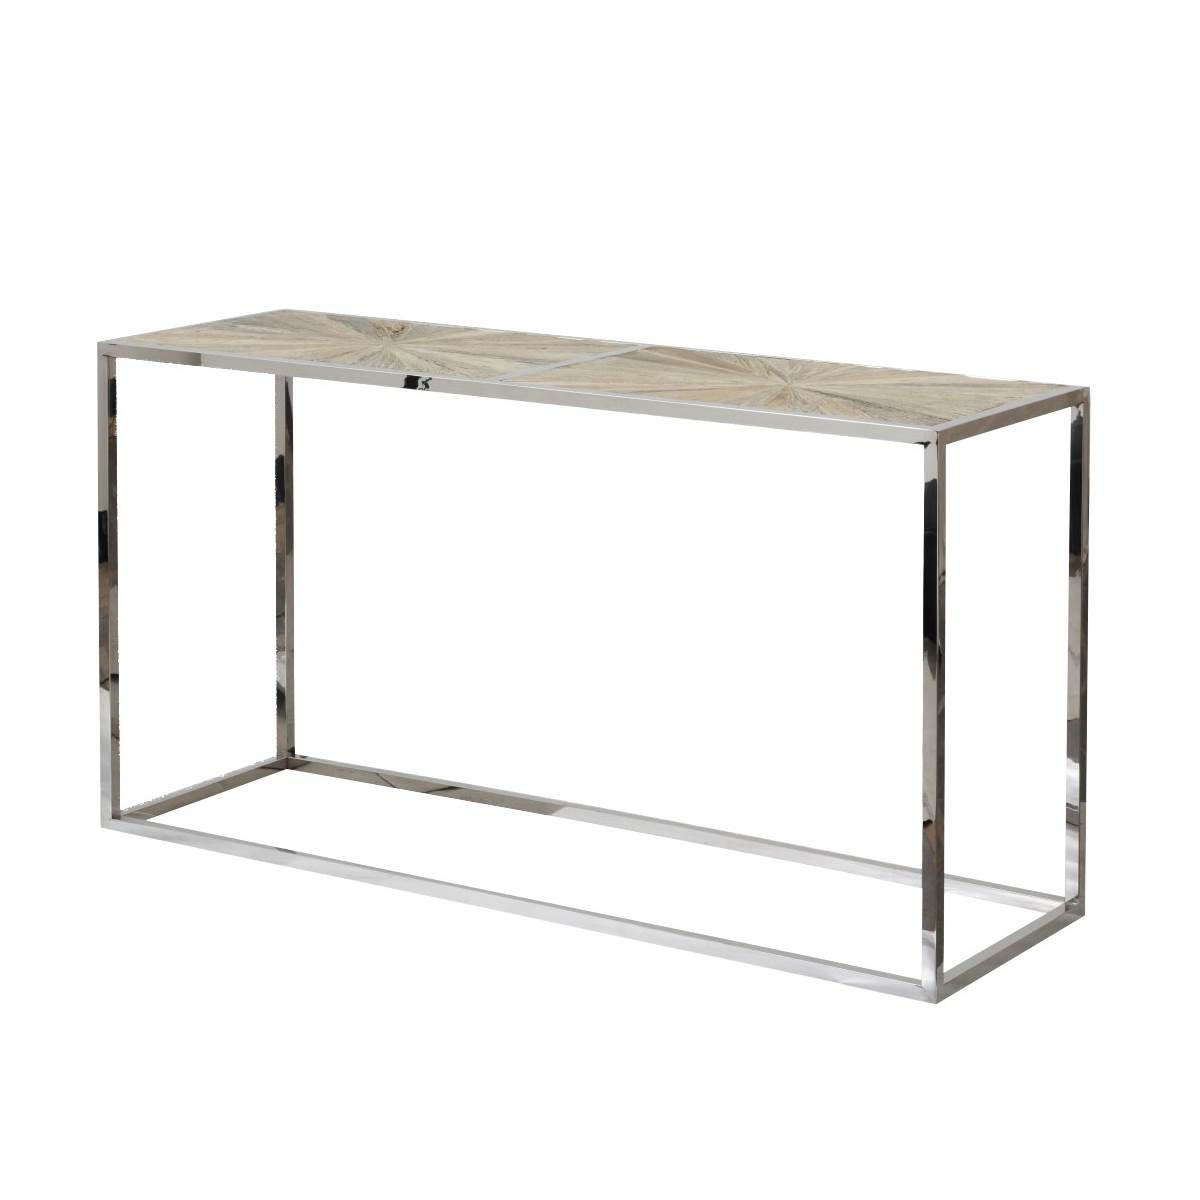 Parquet Console Table | Marshall | Pinterest For Parsons Grey Solid Surface Top & Stainless Steel Base 48X16 Console Tables (View 8 of 20)